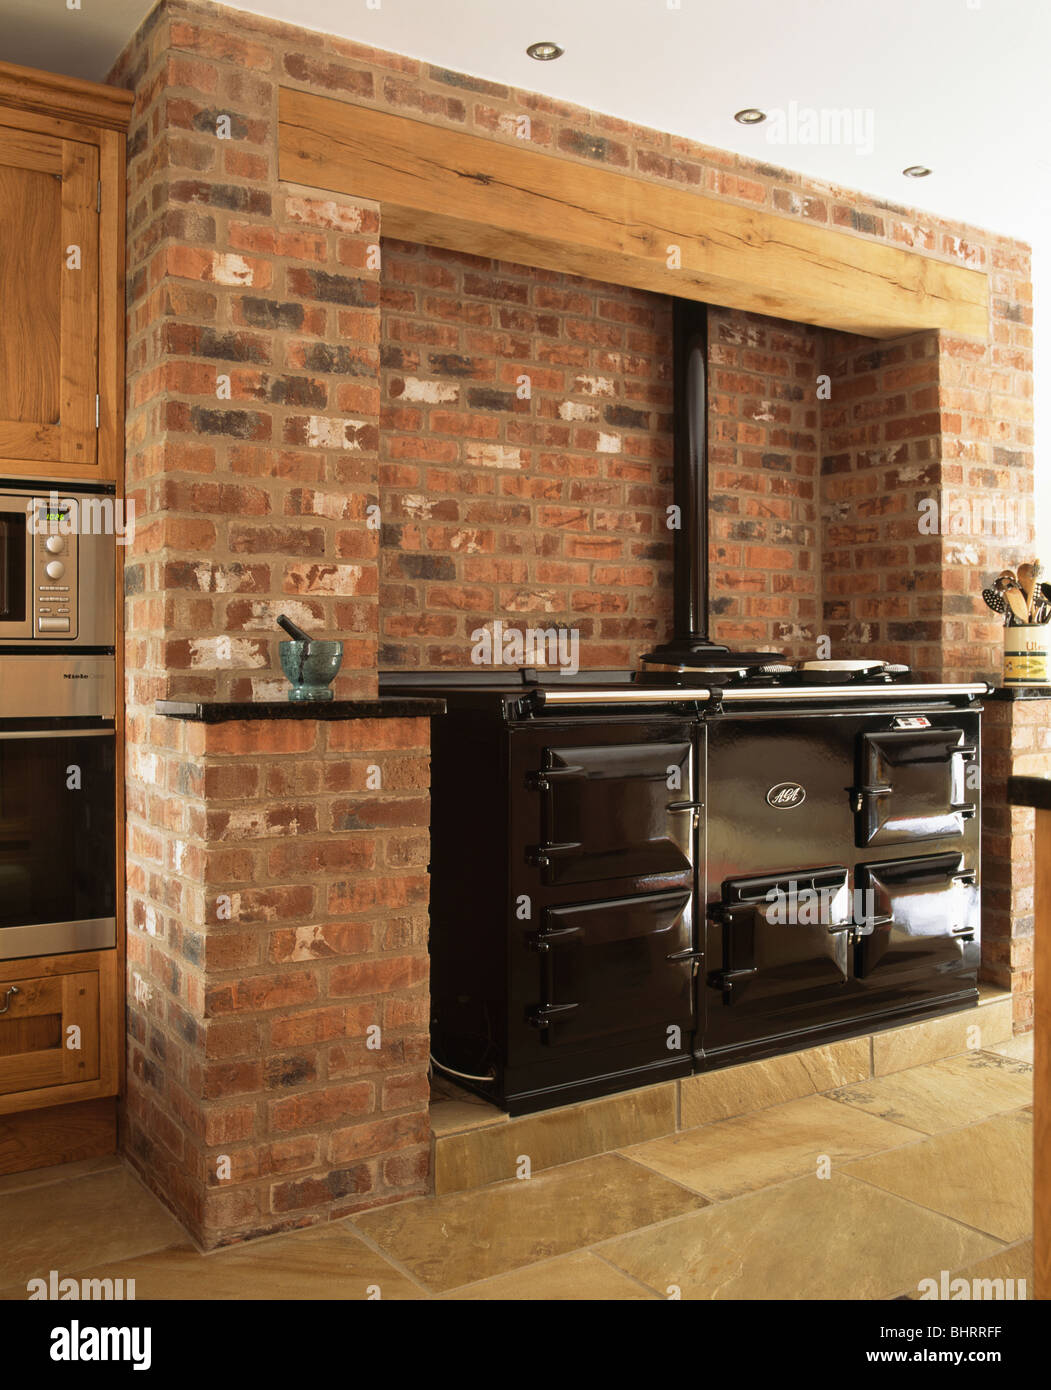 Black double Aga oven in exposed brick wall in country kitchen Stock